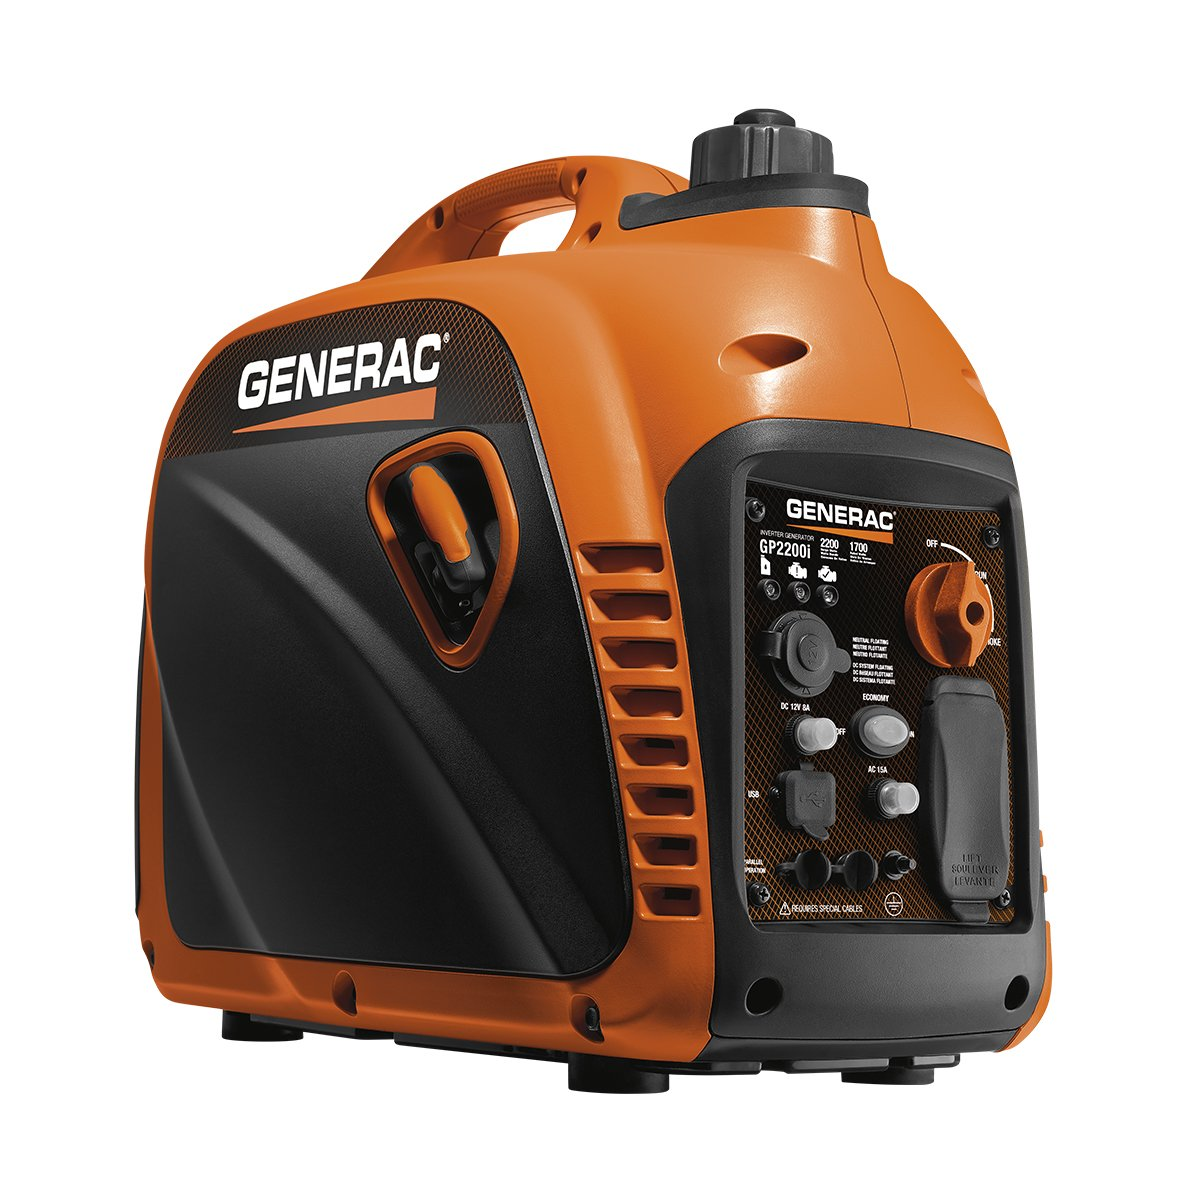 Generac 7117 GP2200i 2200 Watt Portable Inverter Generator - Parallel Ready by Generac